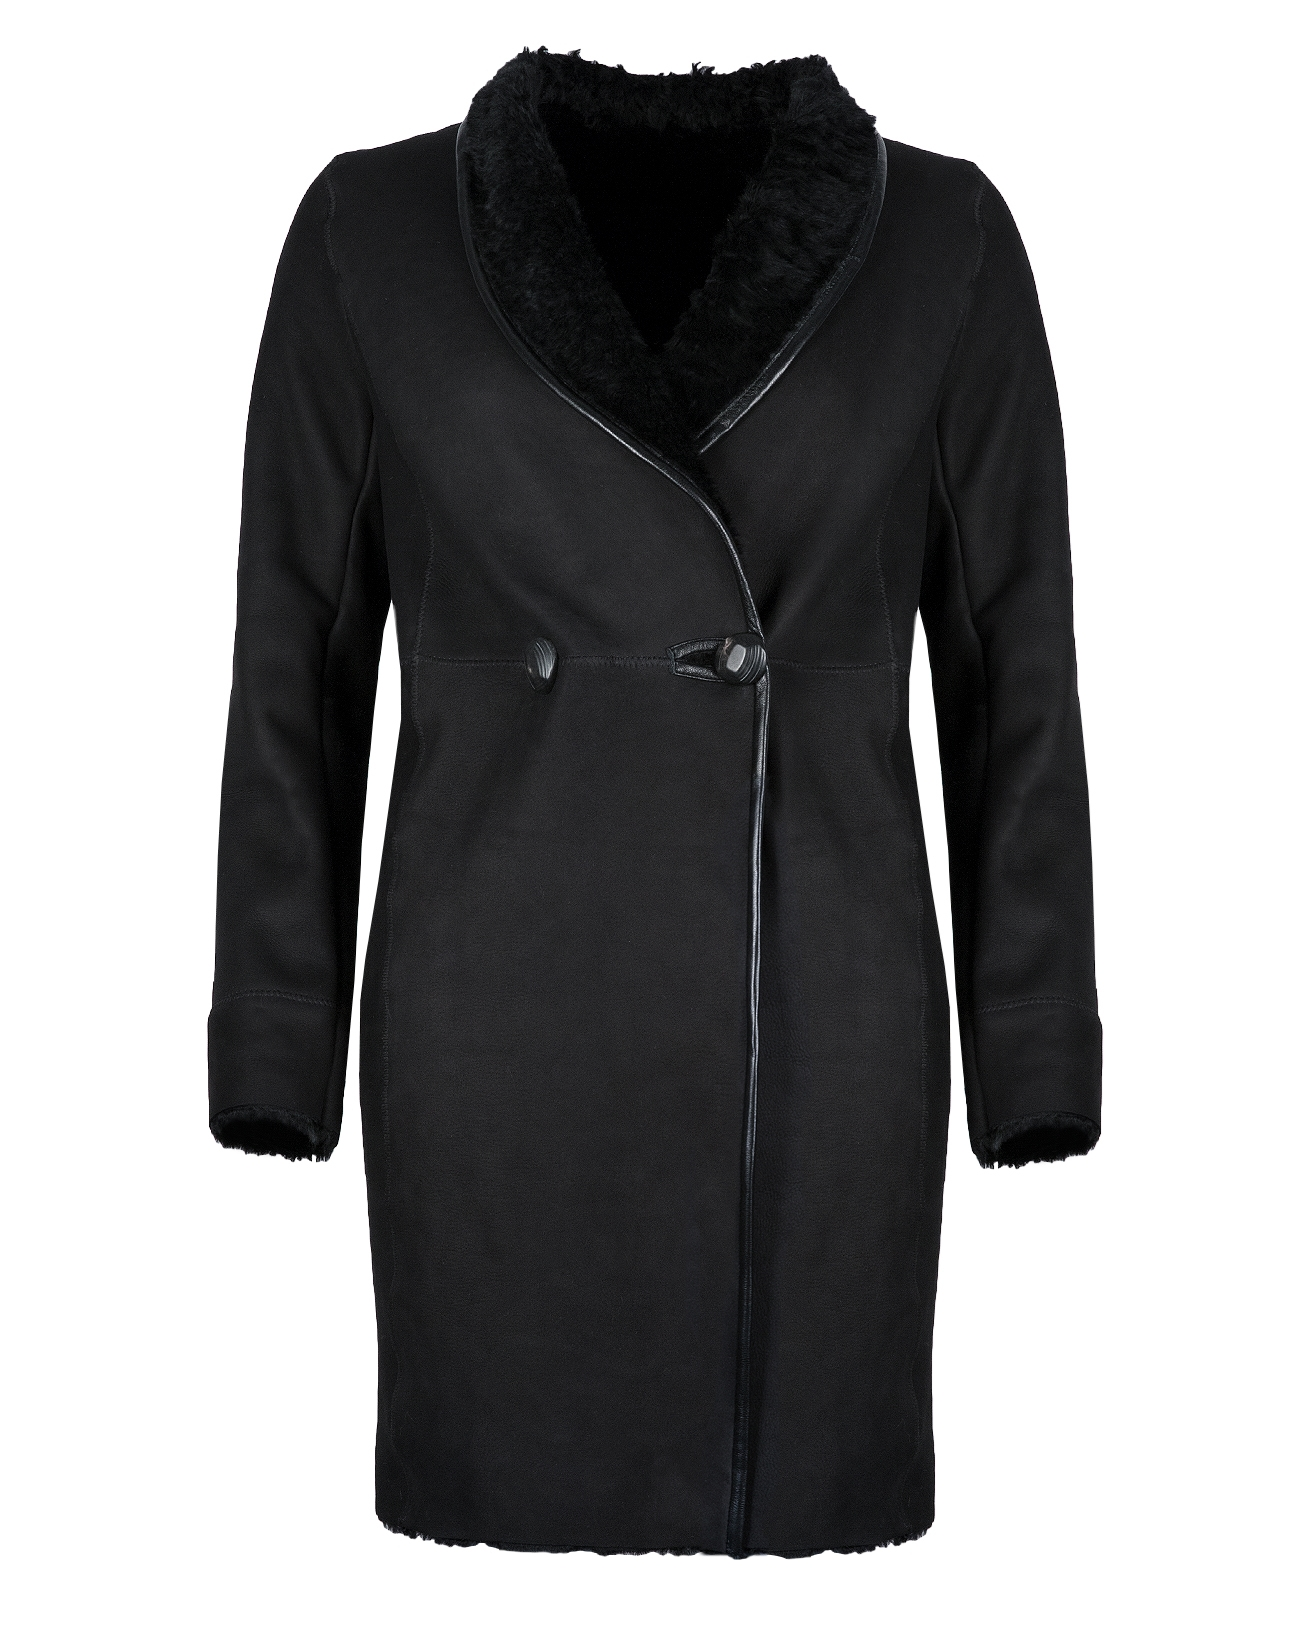 7419_merilino double brested coat_front_aw17.jpg